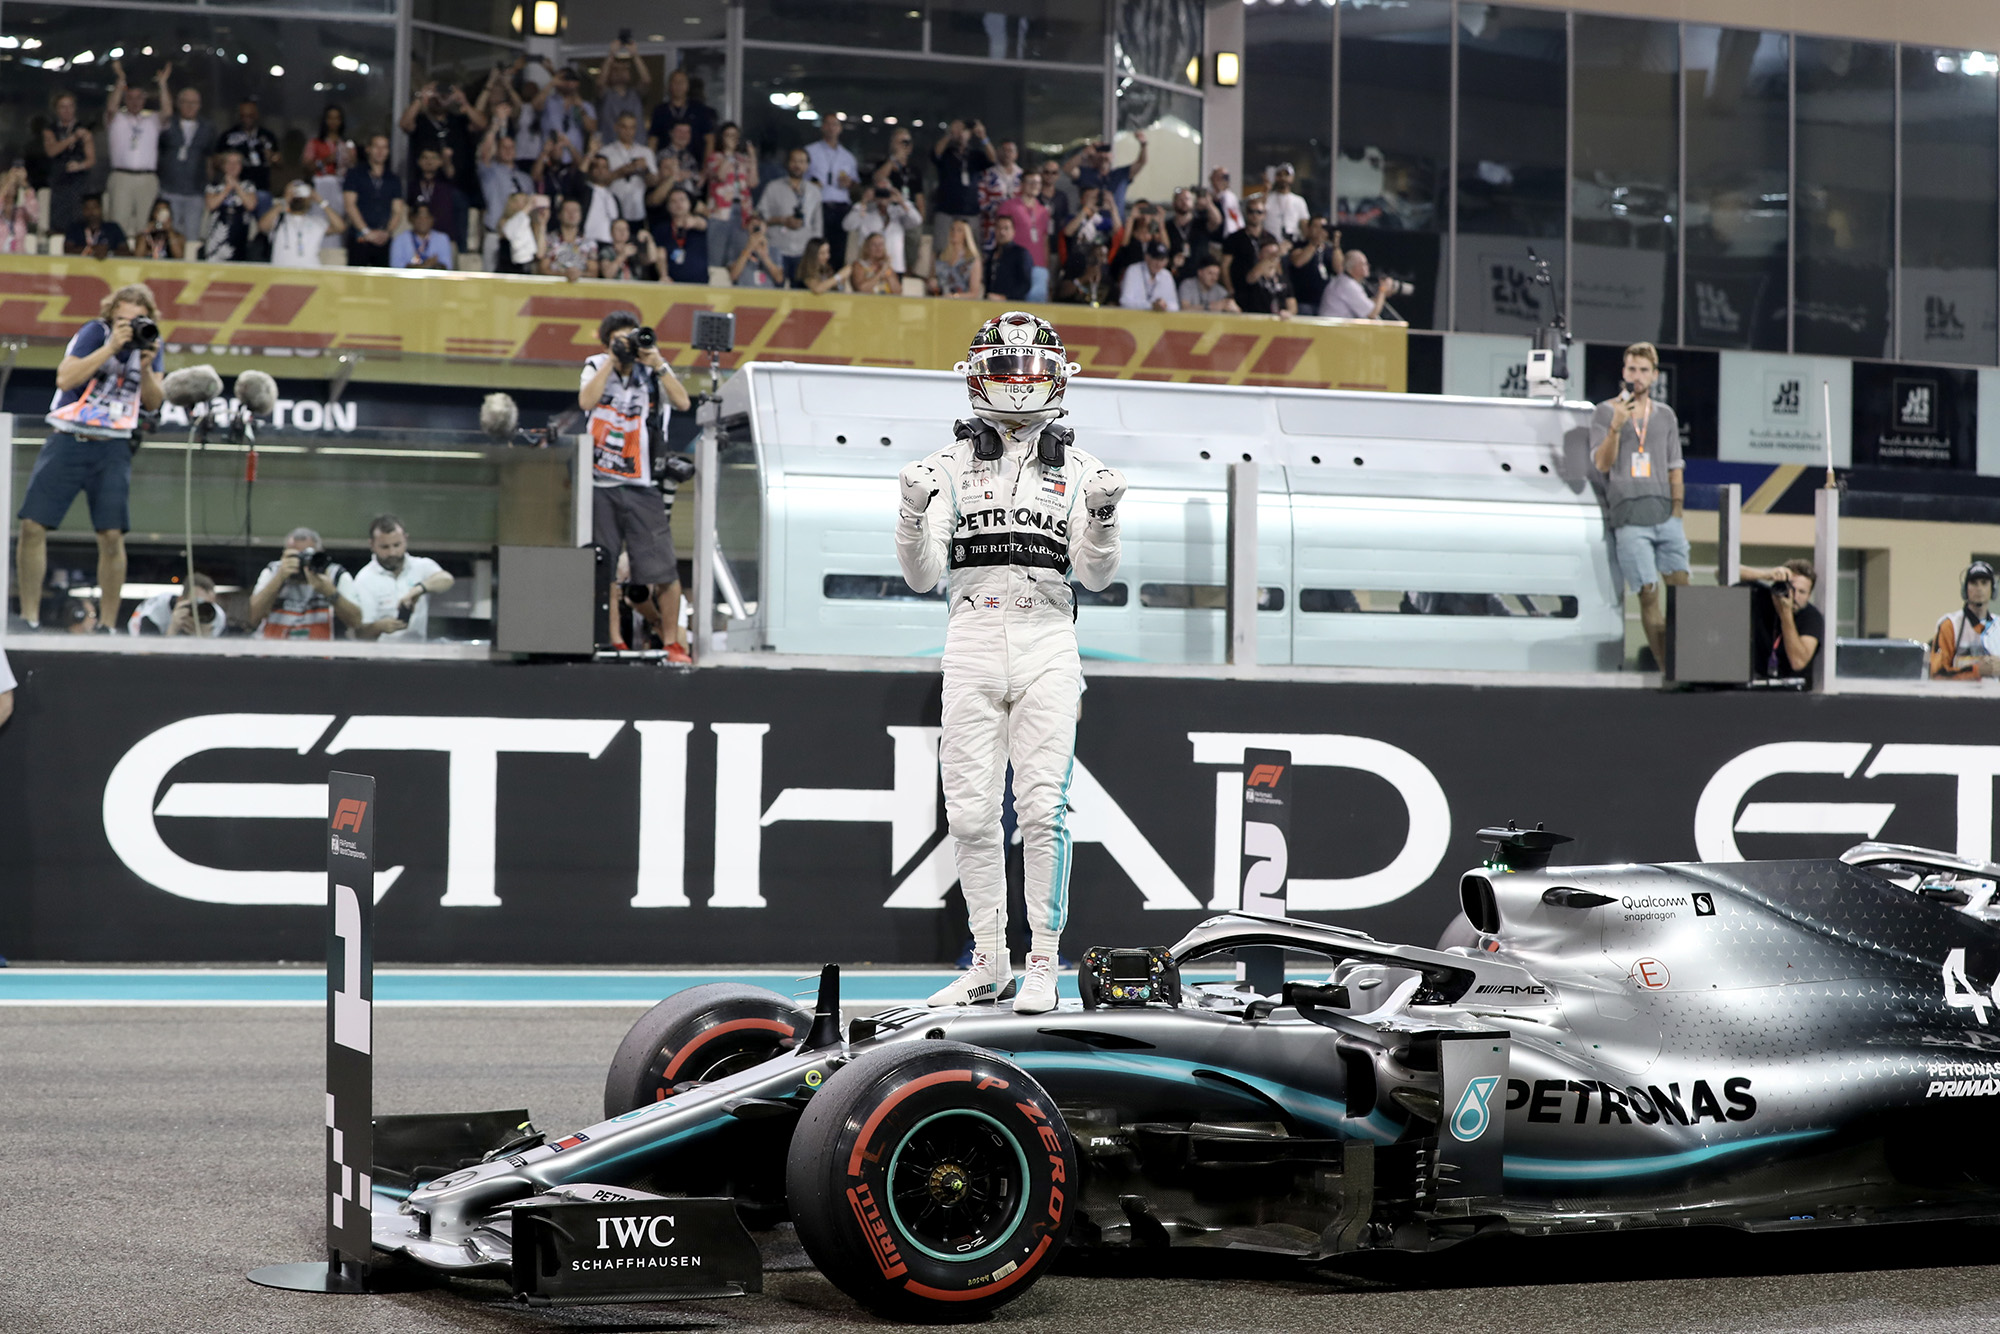 Lewis Hamilton stands on his Mercedes as he celebrates taking pole position for the 2019 Abu Dhabi Grand Prix